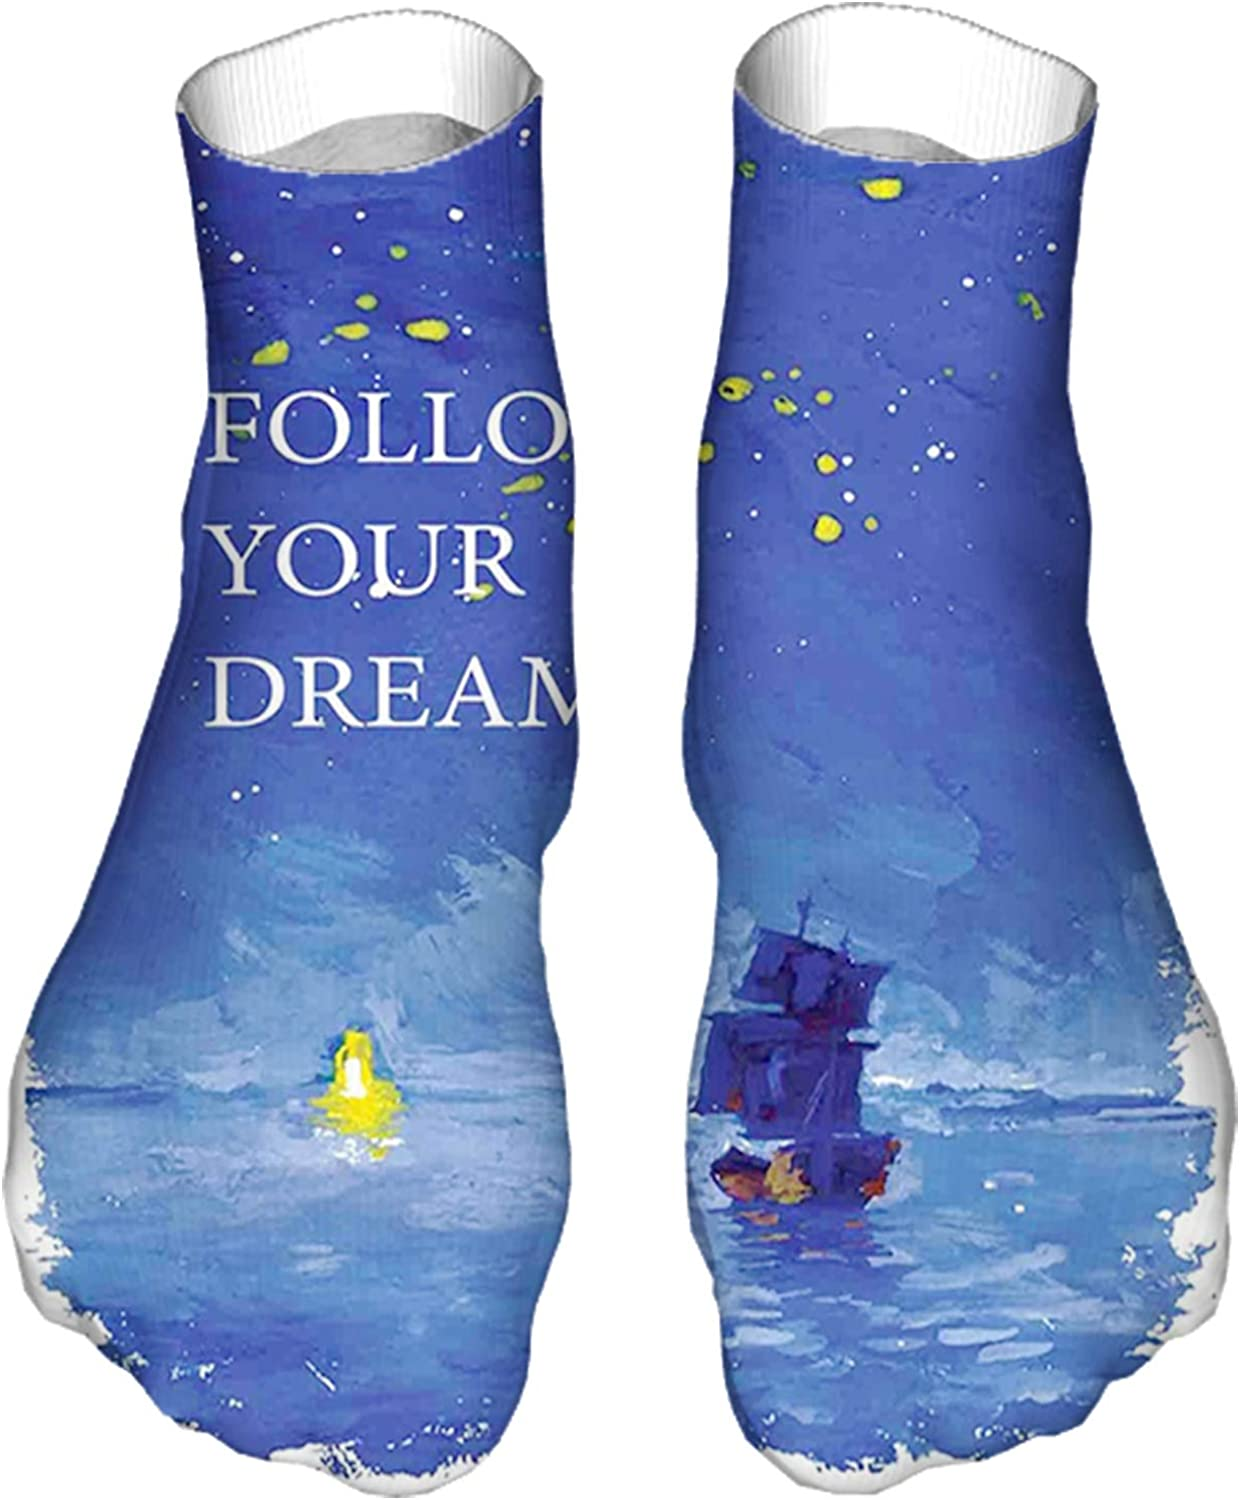 Men's and Women's Fun Socks Printed Cool Novelty Funny Socks,Follow Your Dream Text Ship Sailing Across The Sea Towards